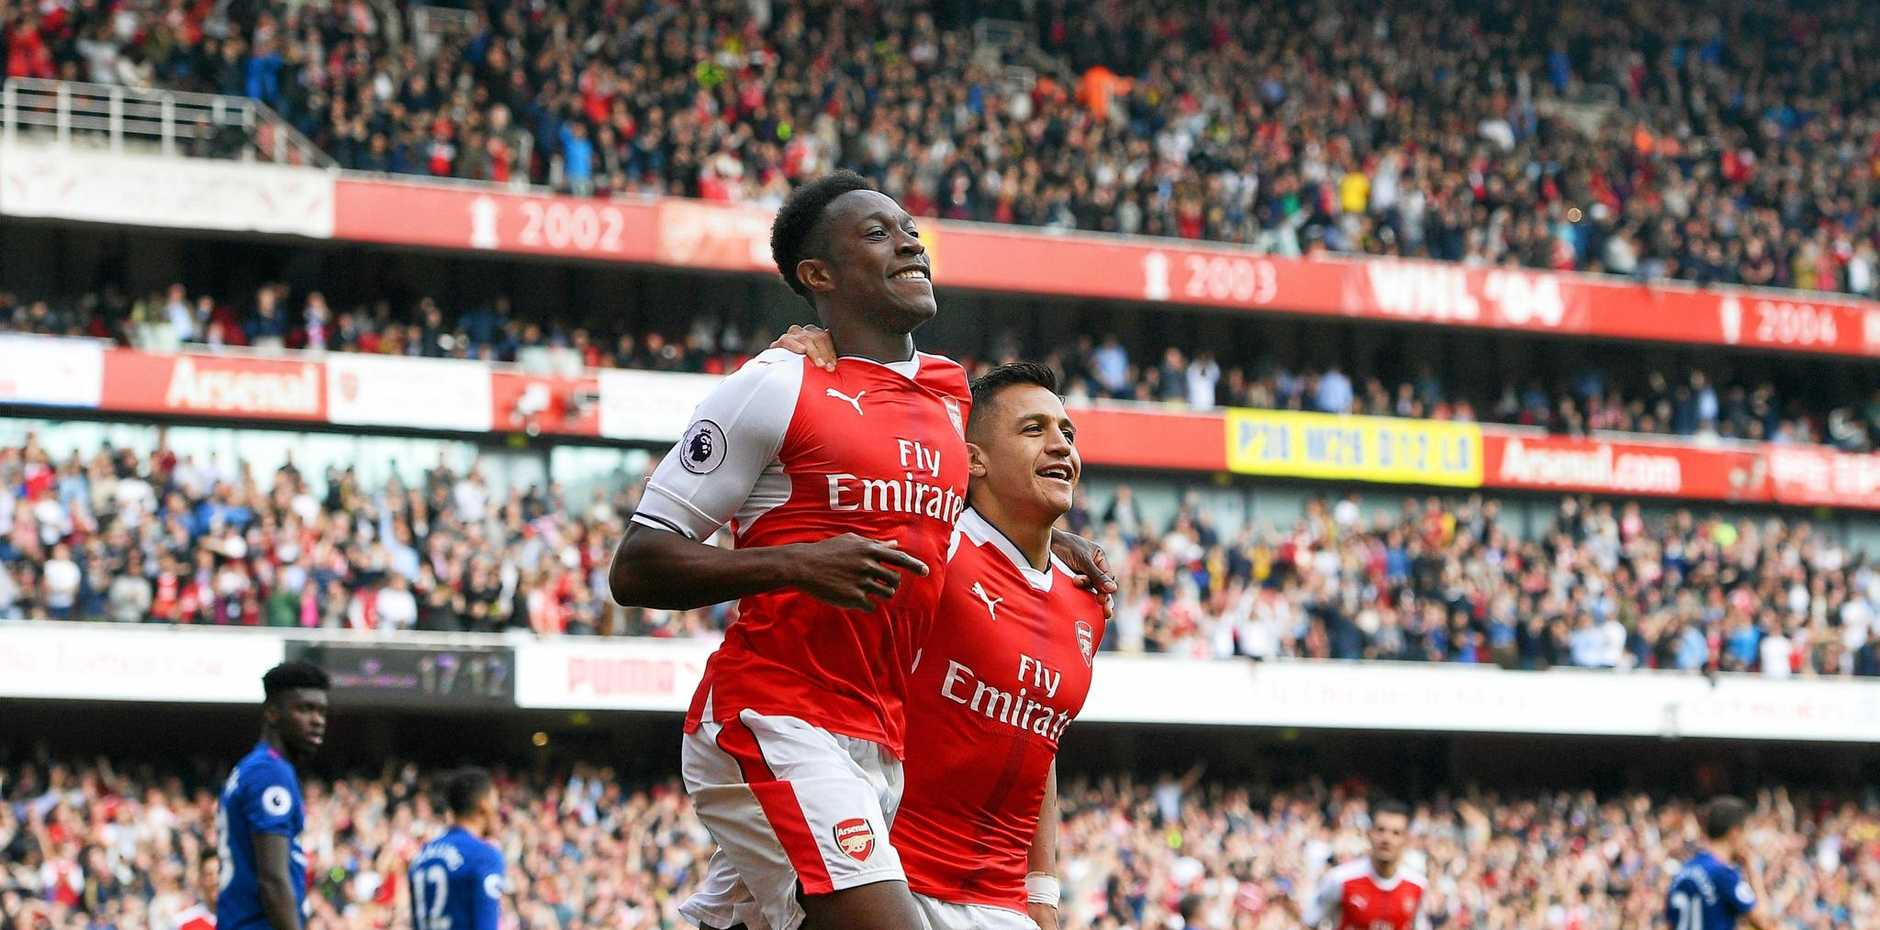 Arsenal's Danny Welbeck celebrates with his teammate Alexis Sanchez after scoring in the 2-0 win over Manchester United.